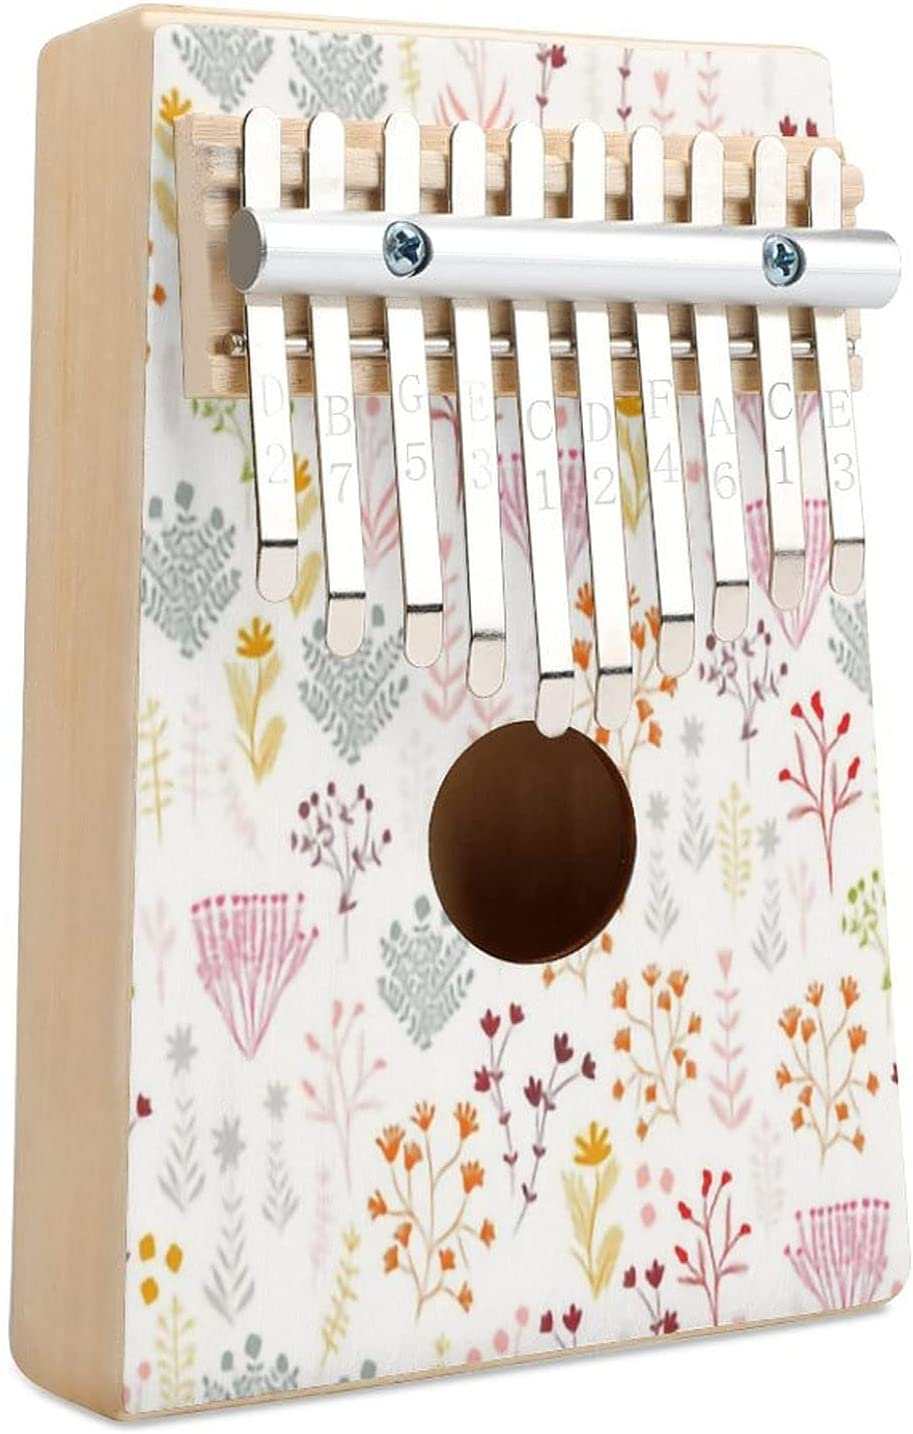 Tiny Max 48% OFF Handdrawn Botanical Floral M1 White Sale Special Price 10 Kalimba Piano Thumb